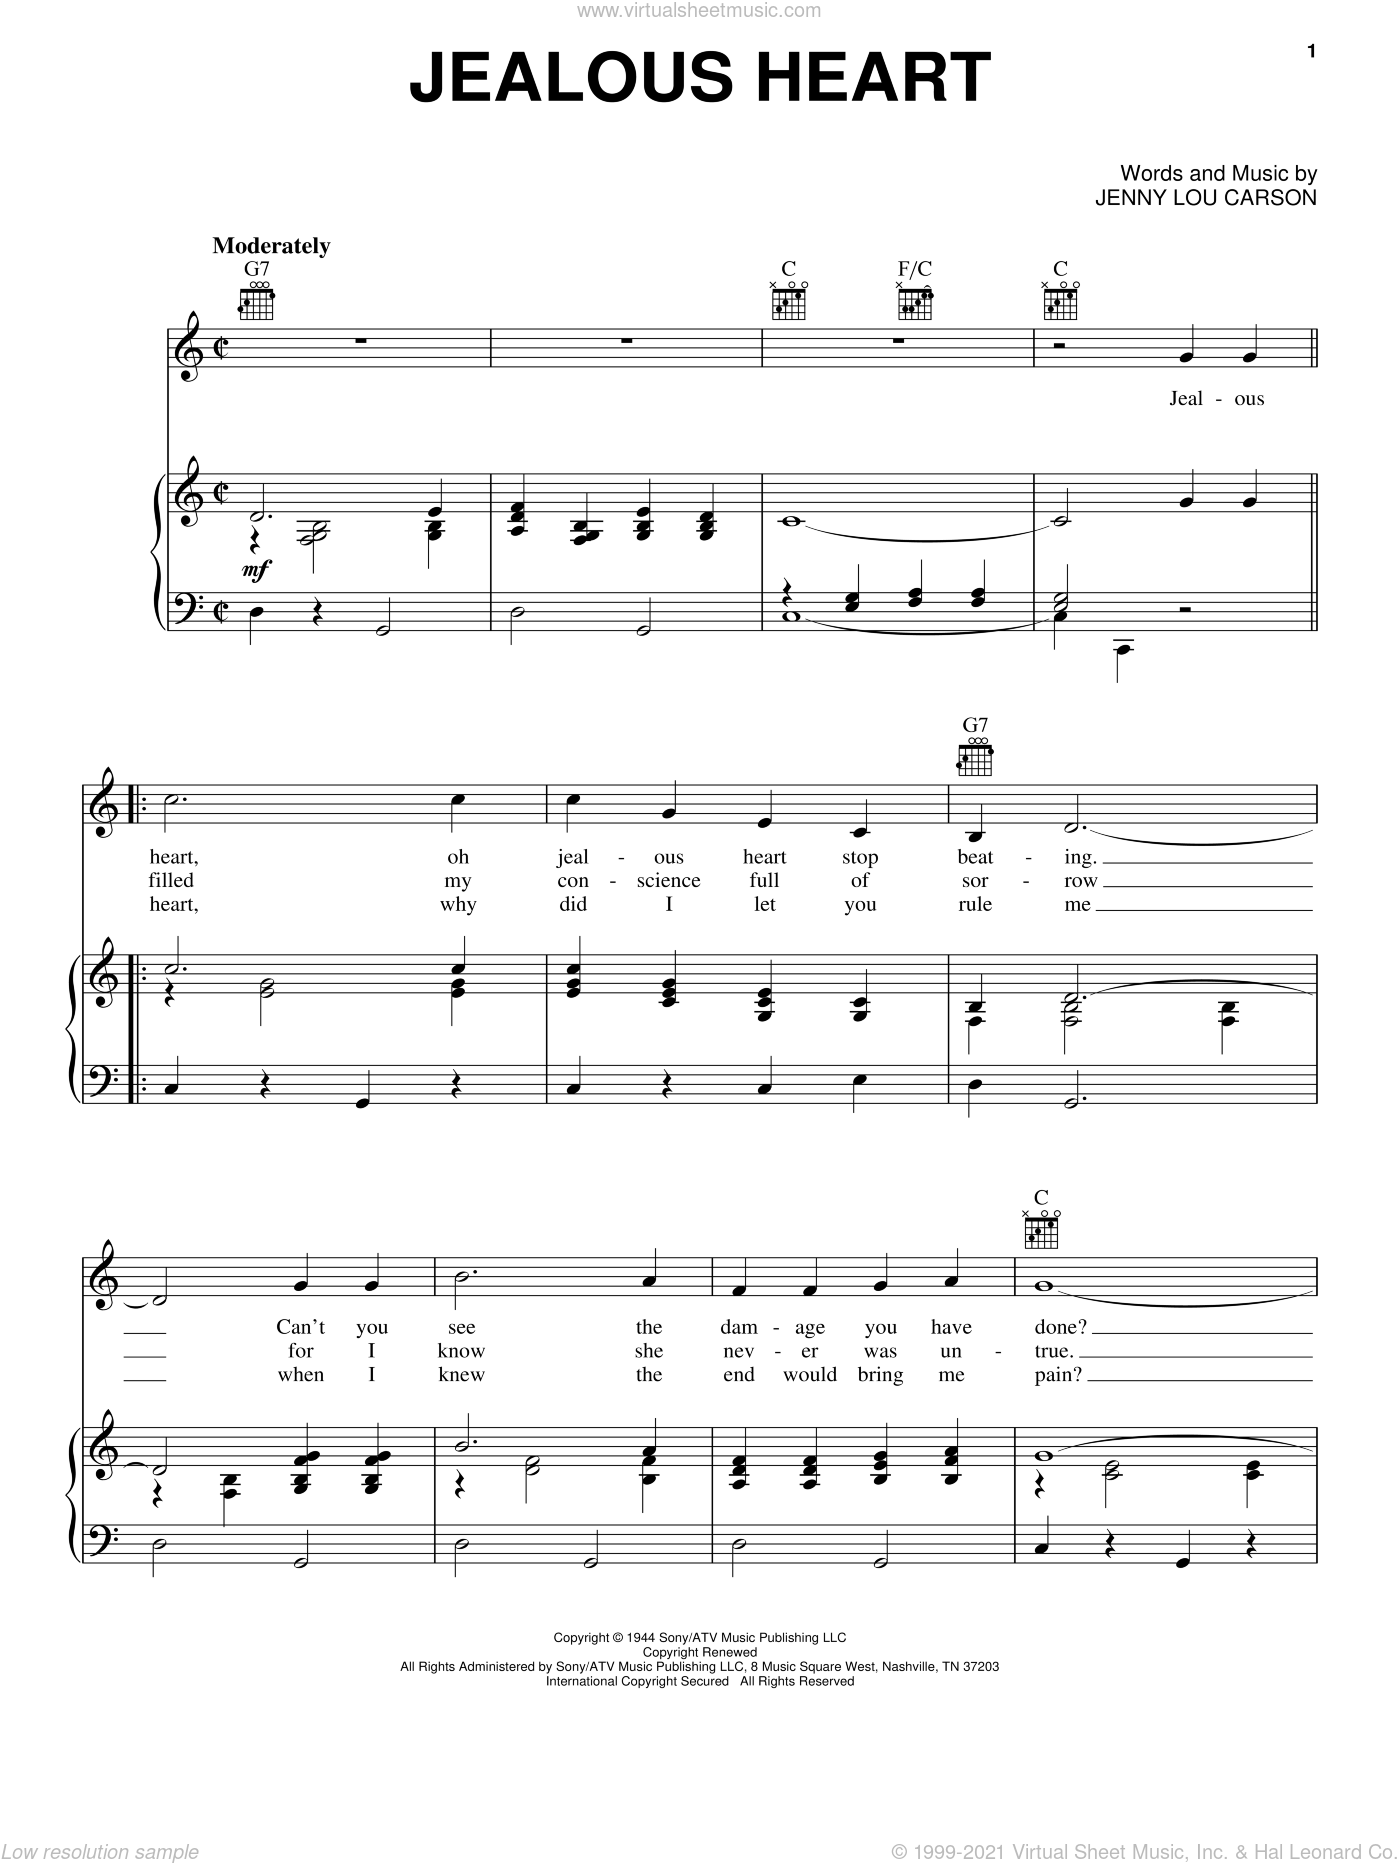 Jealous Heart sheet music for voice, piano or guitar by Jenny Lou Carson